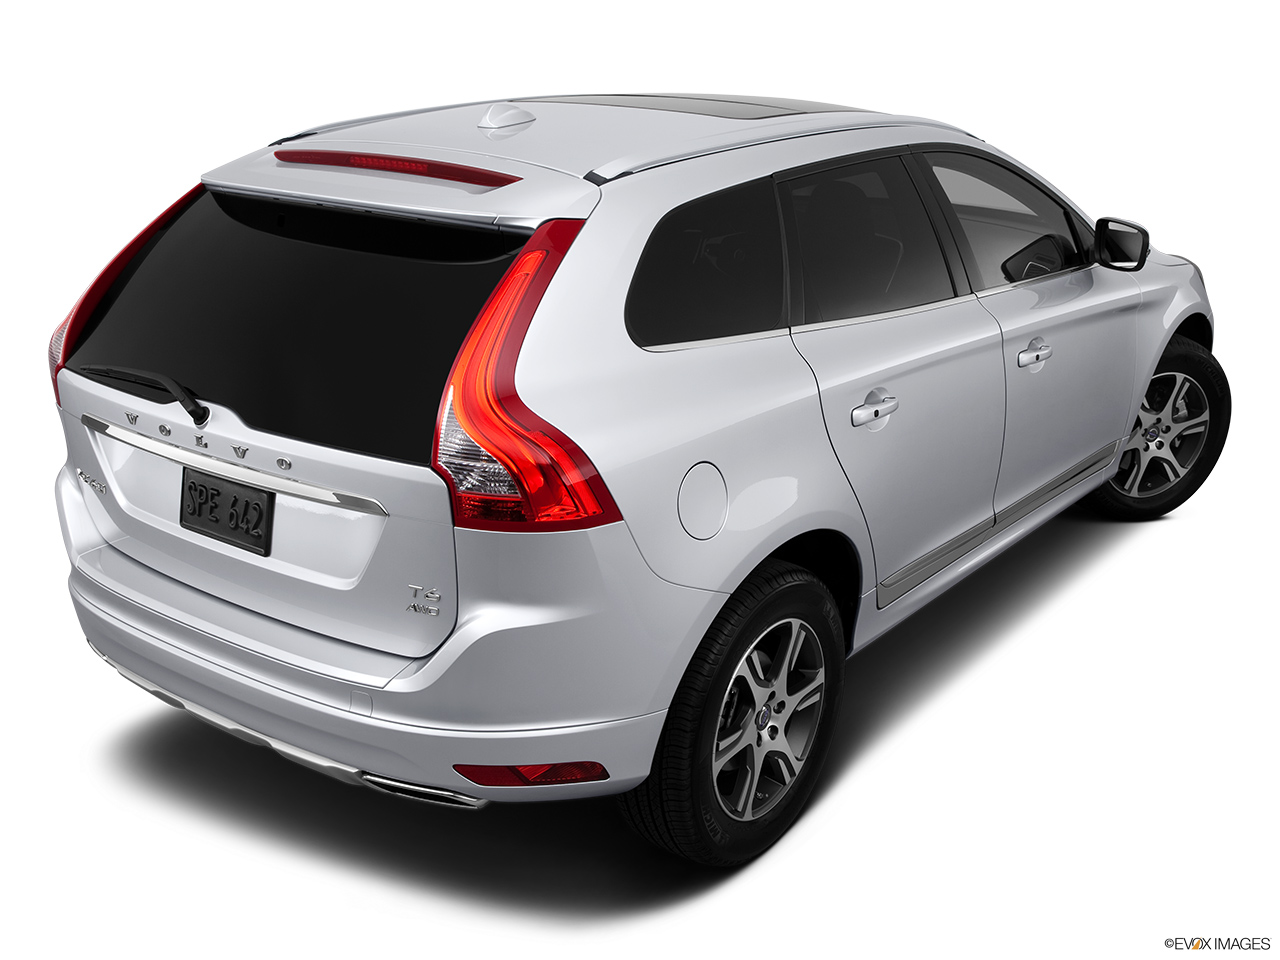 2014 Volvo XC60 T6 AWD Premier Plus Rear 3/4 angle view.